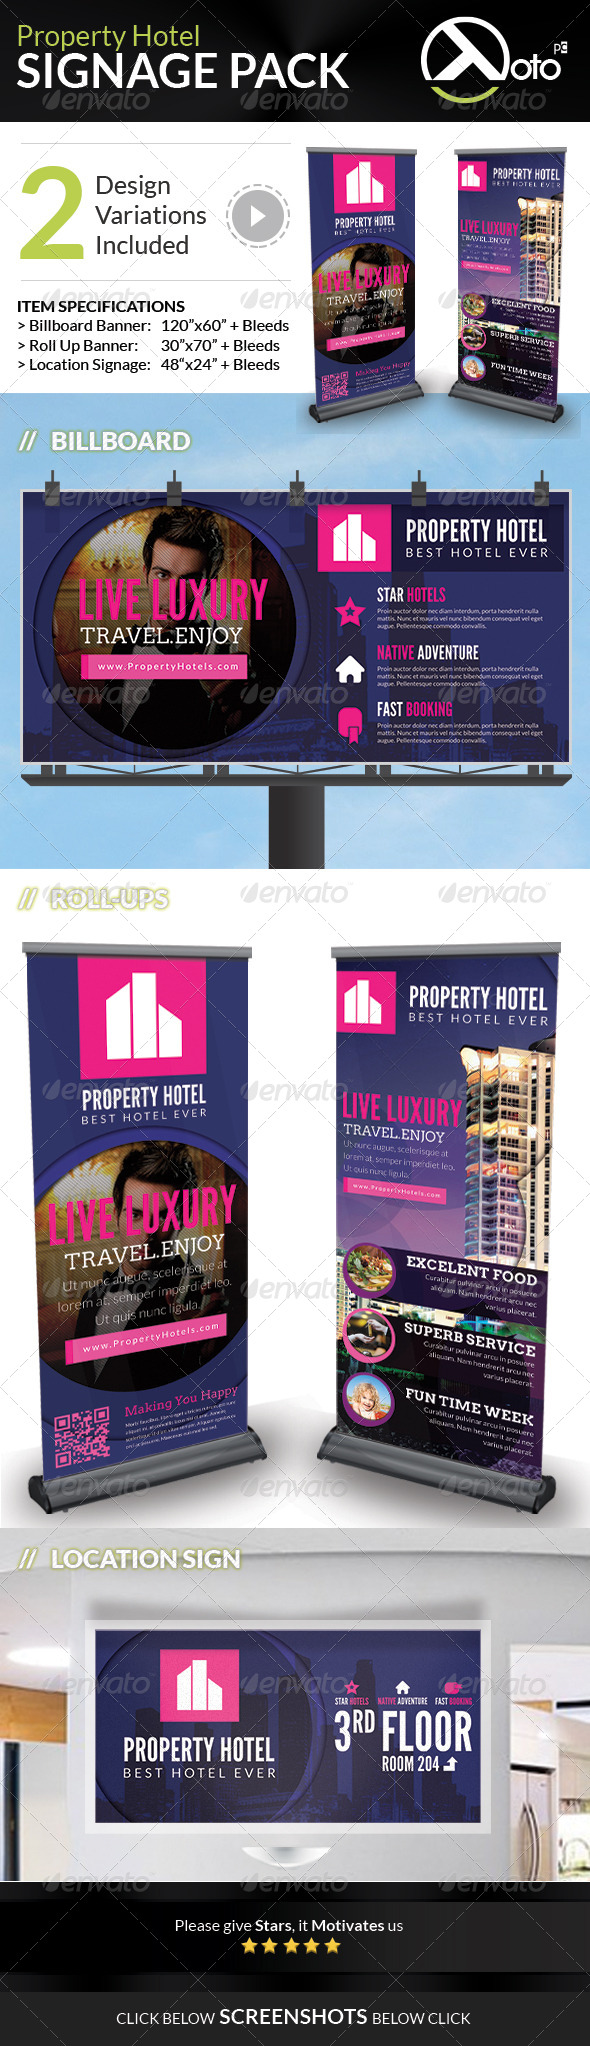 Property Hotel Signage Pack - Signage Print Templates